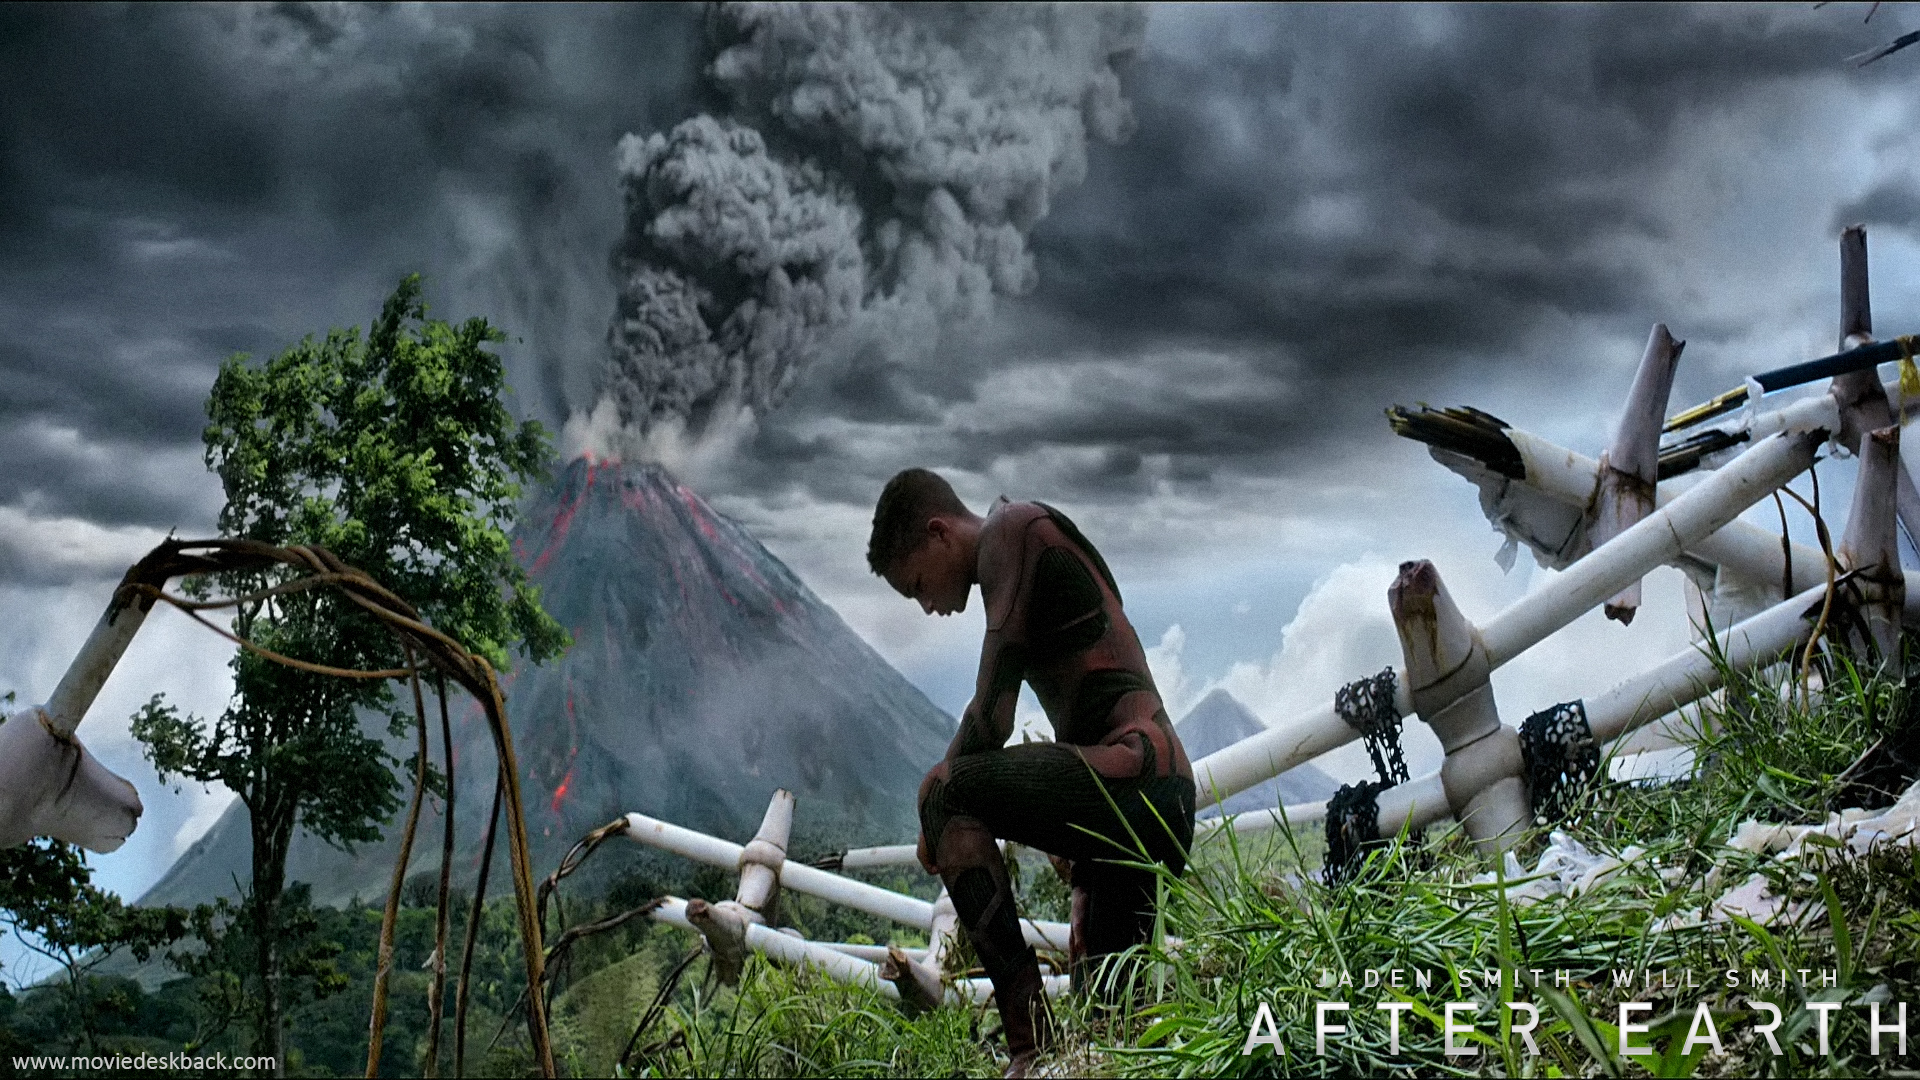 The Future and After Earth Welcome Back 1920x1080